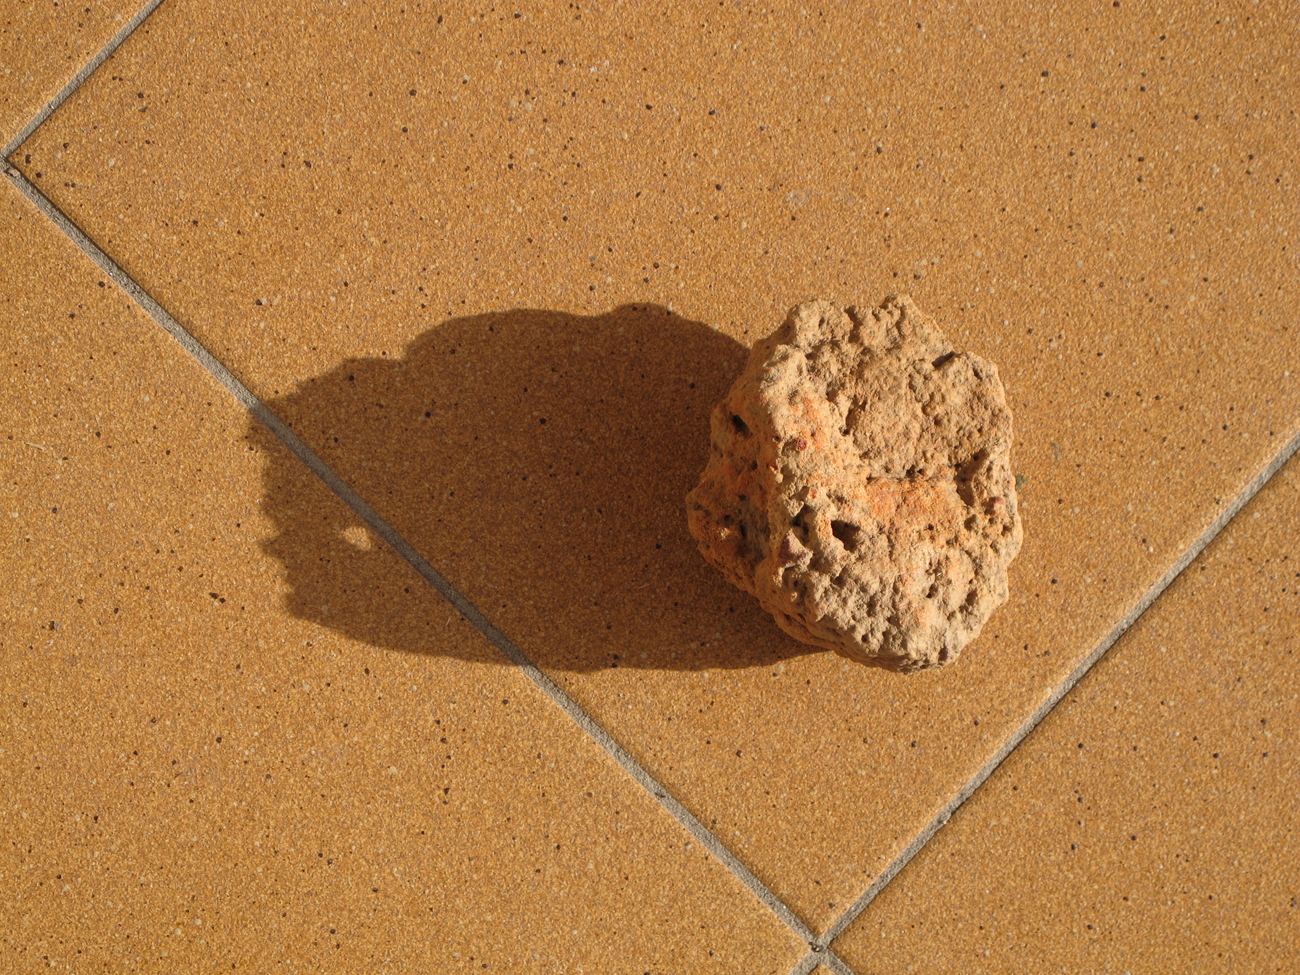 densely perforated piece of sandstone